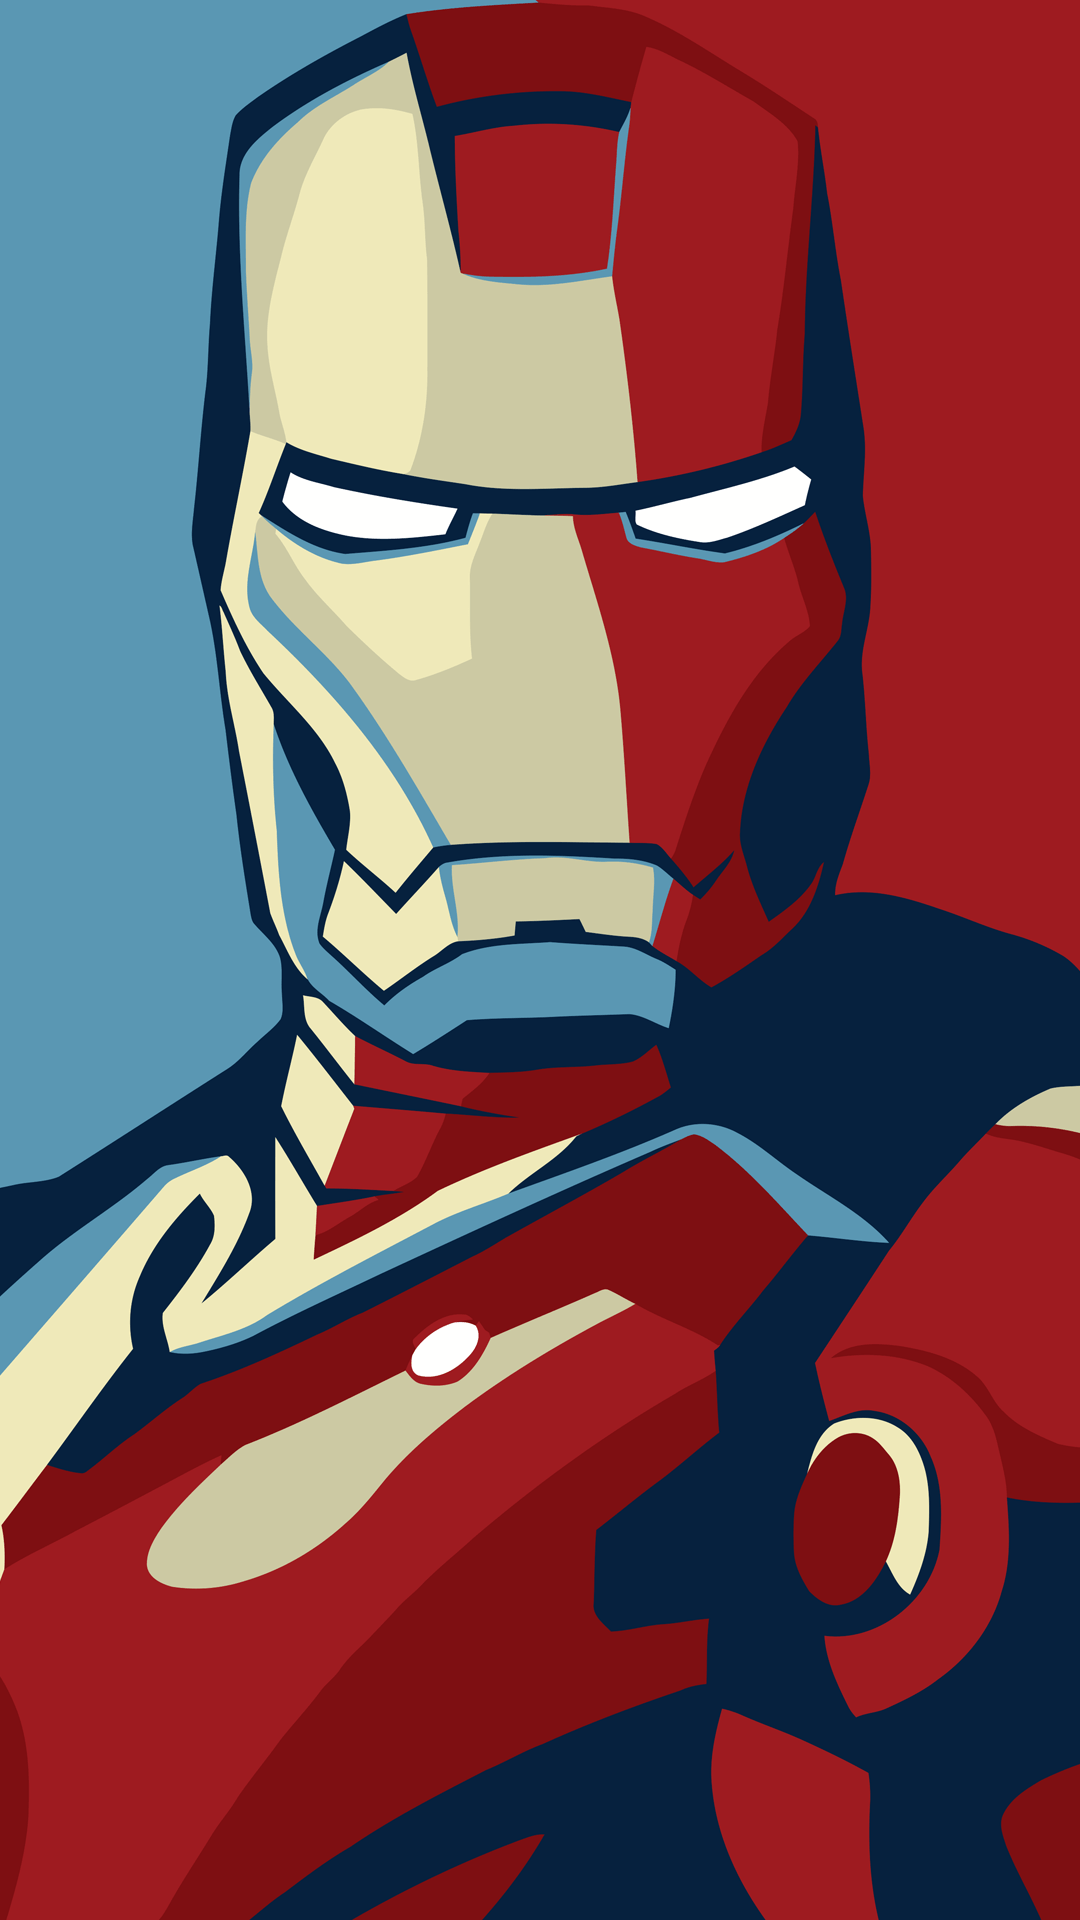 Download 8300 Koleksi Wallpaper Keren Hd Iron Man HD Terbaru